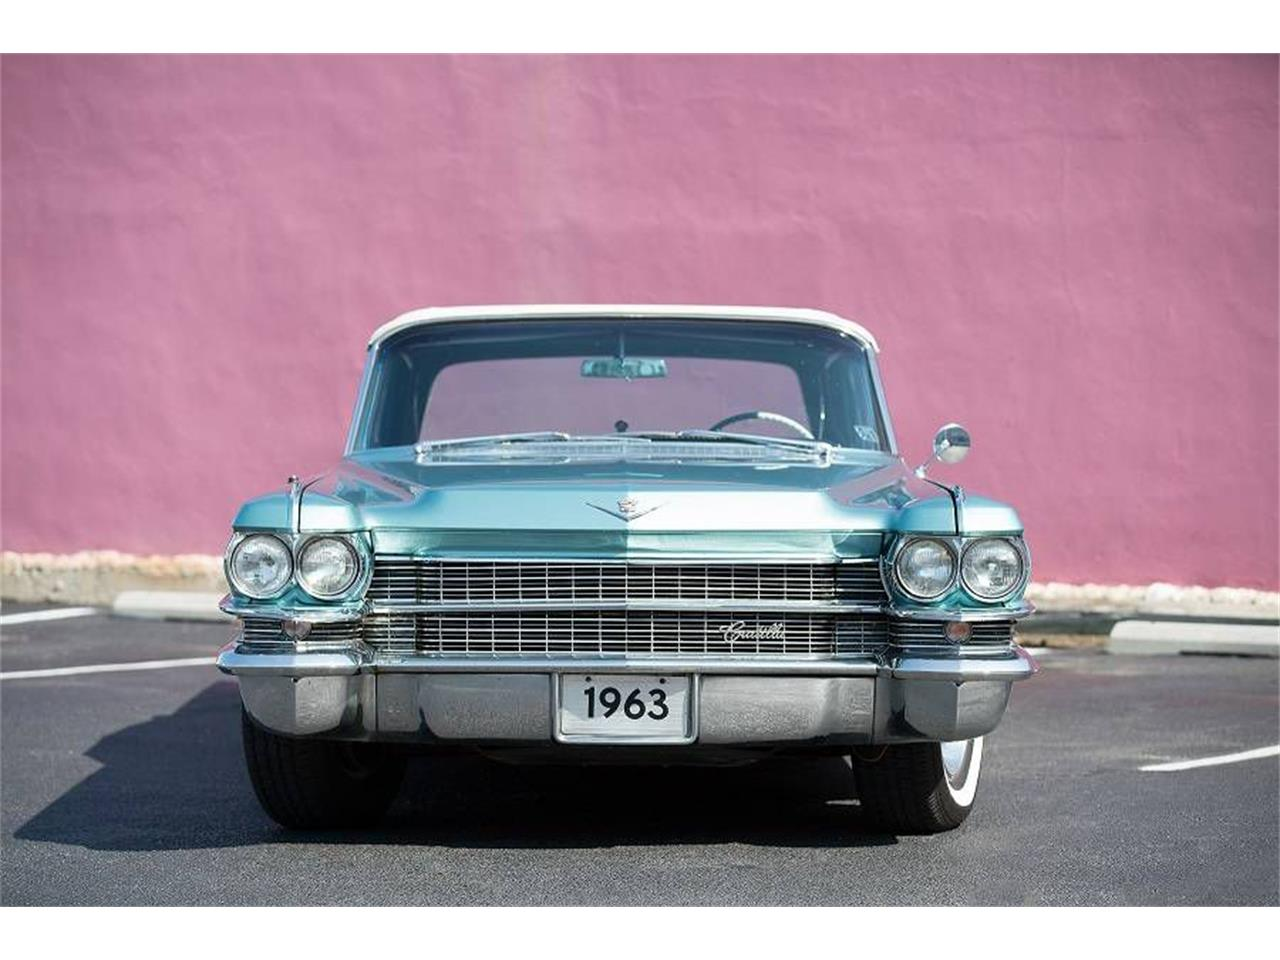 1963 Cadillac Eldorado for sale in West Pittston, PA